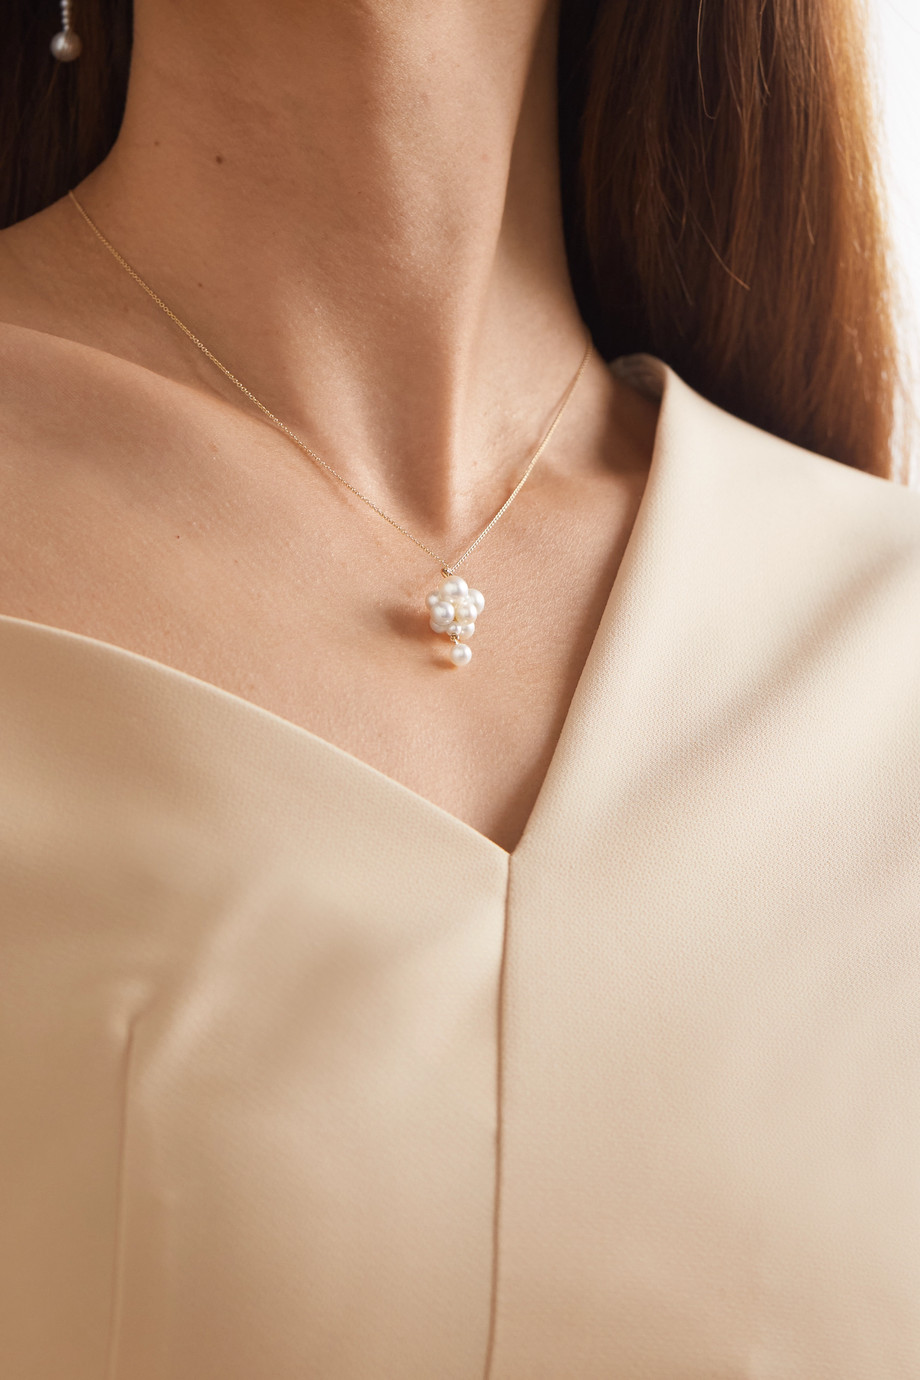 Sophie Bille Brahe Celli Chaine 14-karat gold pearl necklace